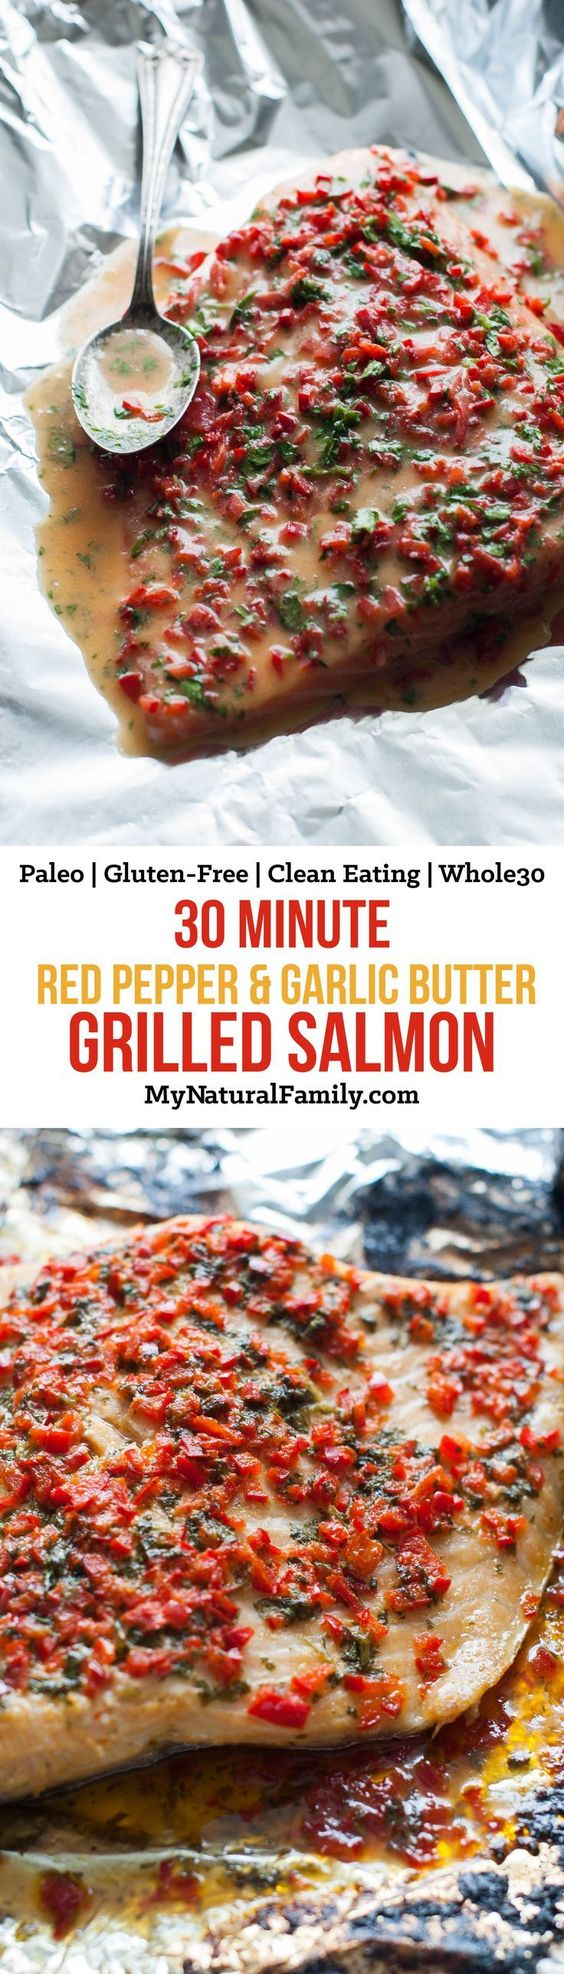 30 Minute Red Pepper and Garlic Butter Foil-Grilled Salmon Recipe {Paleo, Gluten-Free, Clean Eating, Whole30} - I love how this is really fast to make and tastes so good from the sauce and steaming in the tin foil. I love how the foils keeps the salmon from breaking apart and falling in the grill. Plus, clean up is as simple as throwing the tin foil away.